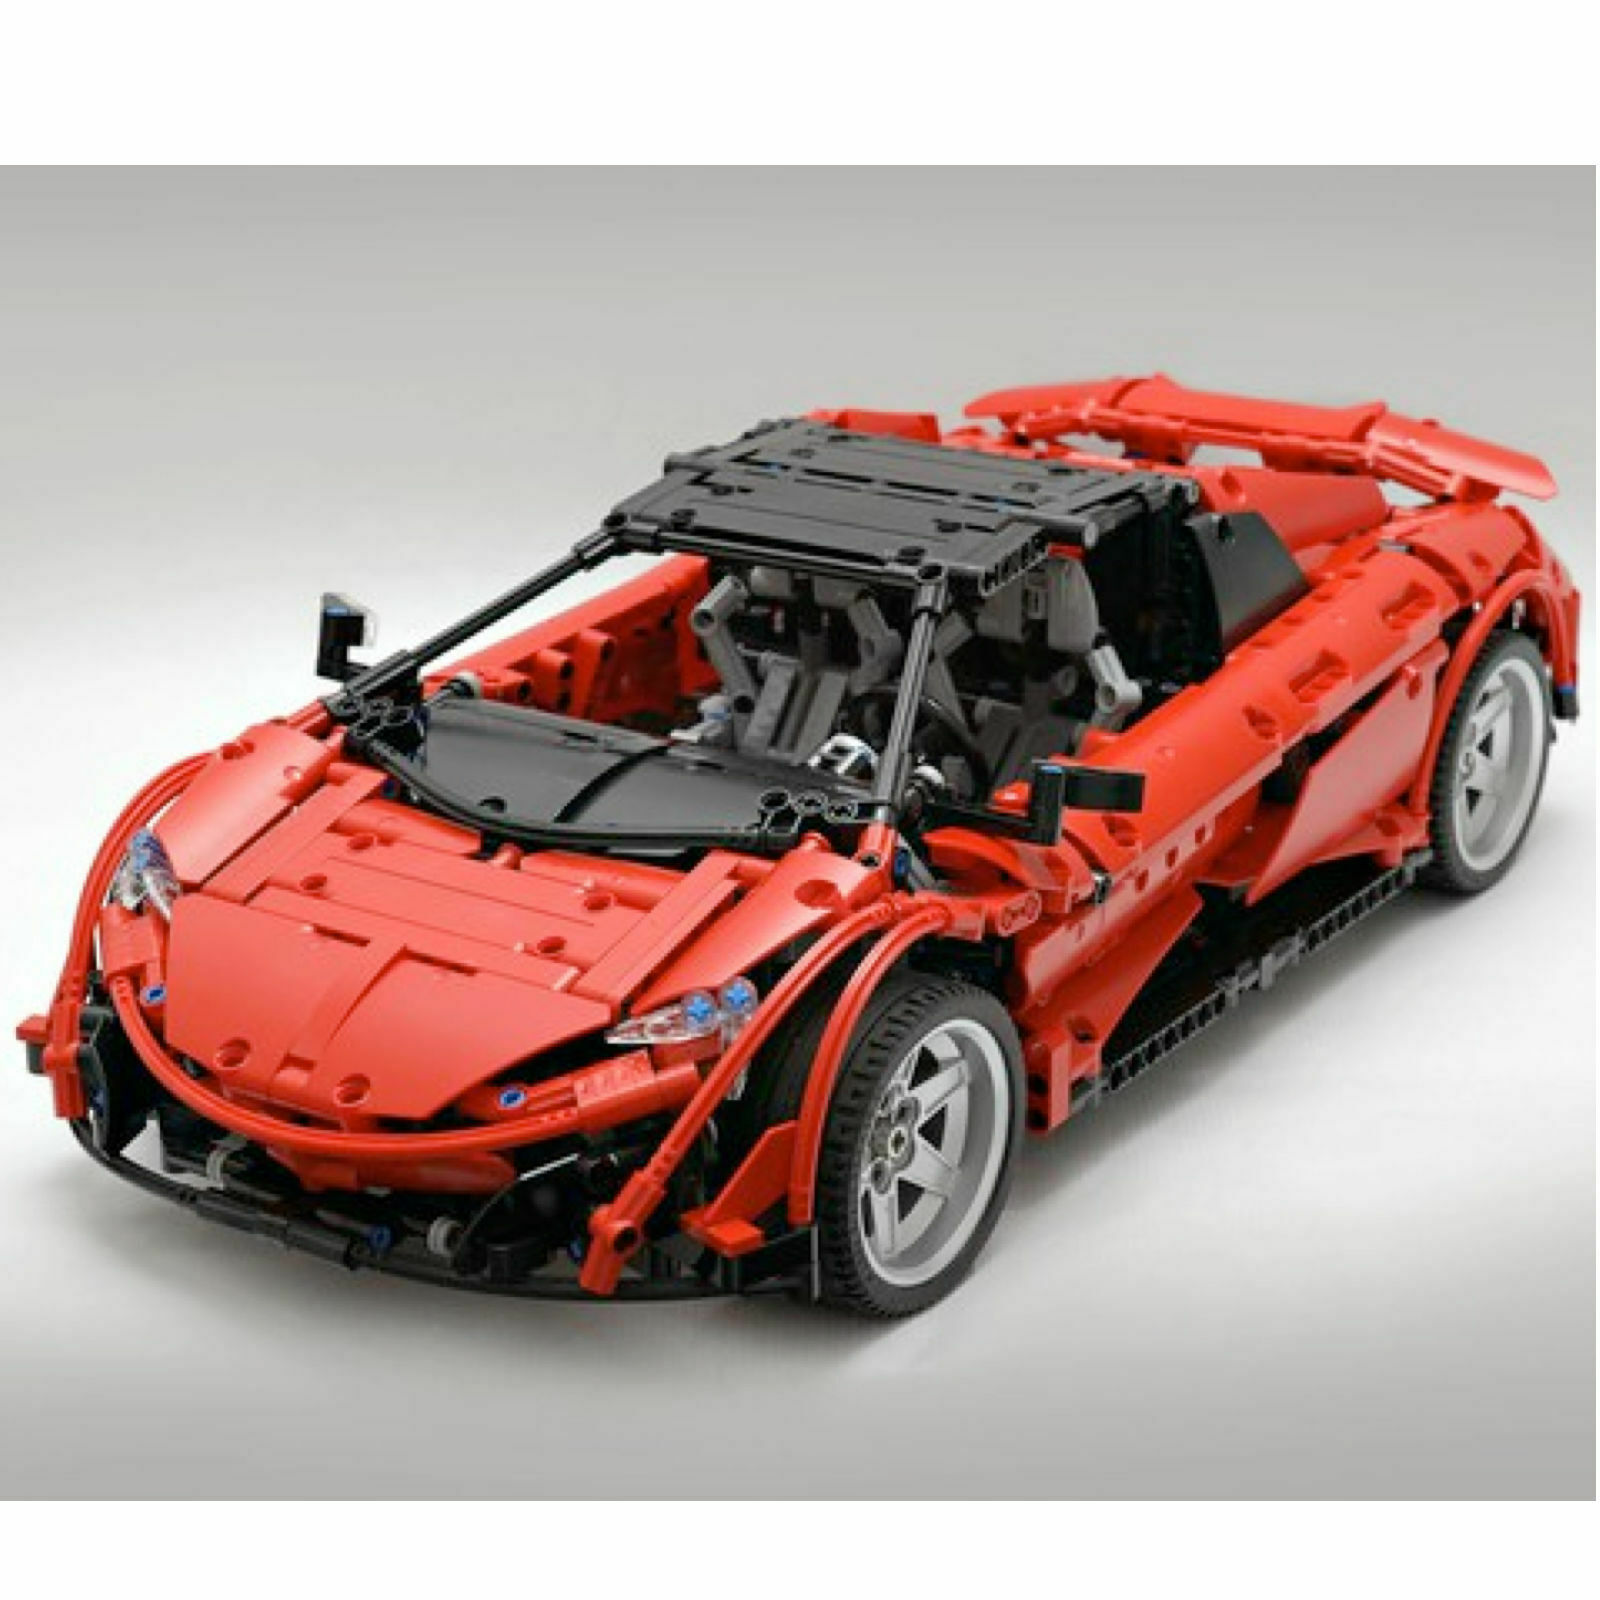 McLaren 675 LT Spindelröd superbil Egen moc-6331 Technic Building Blocks